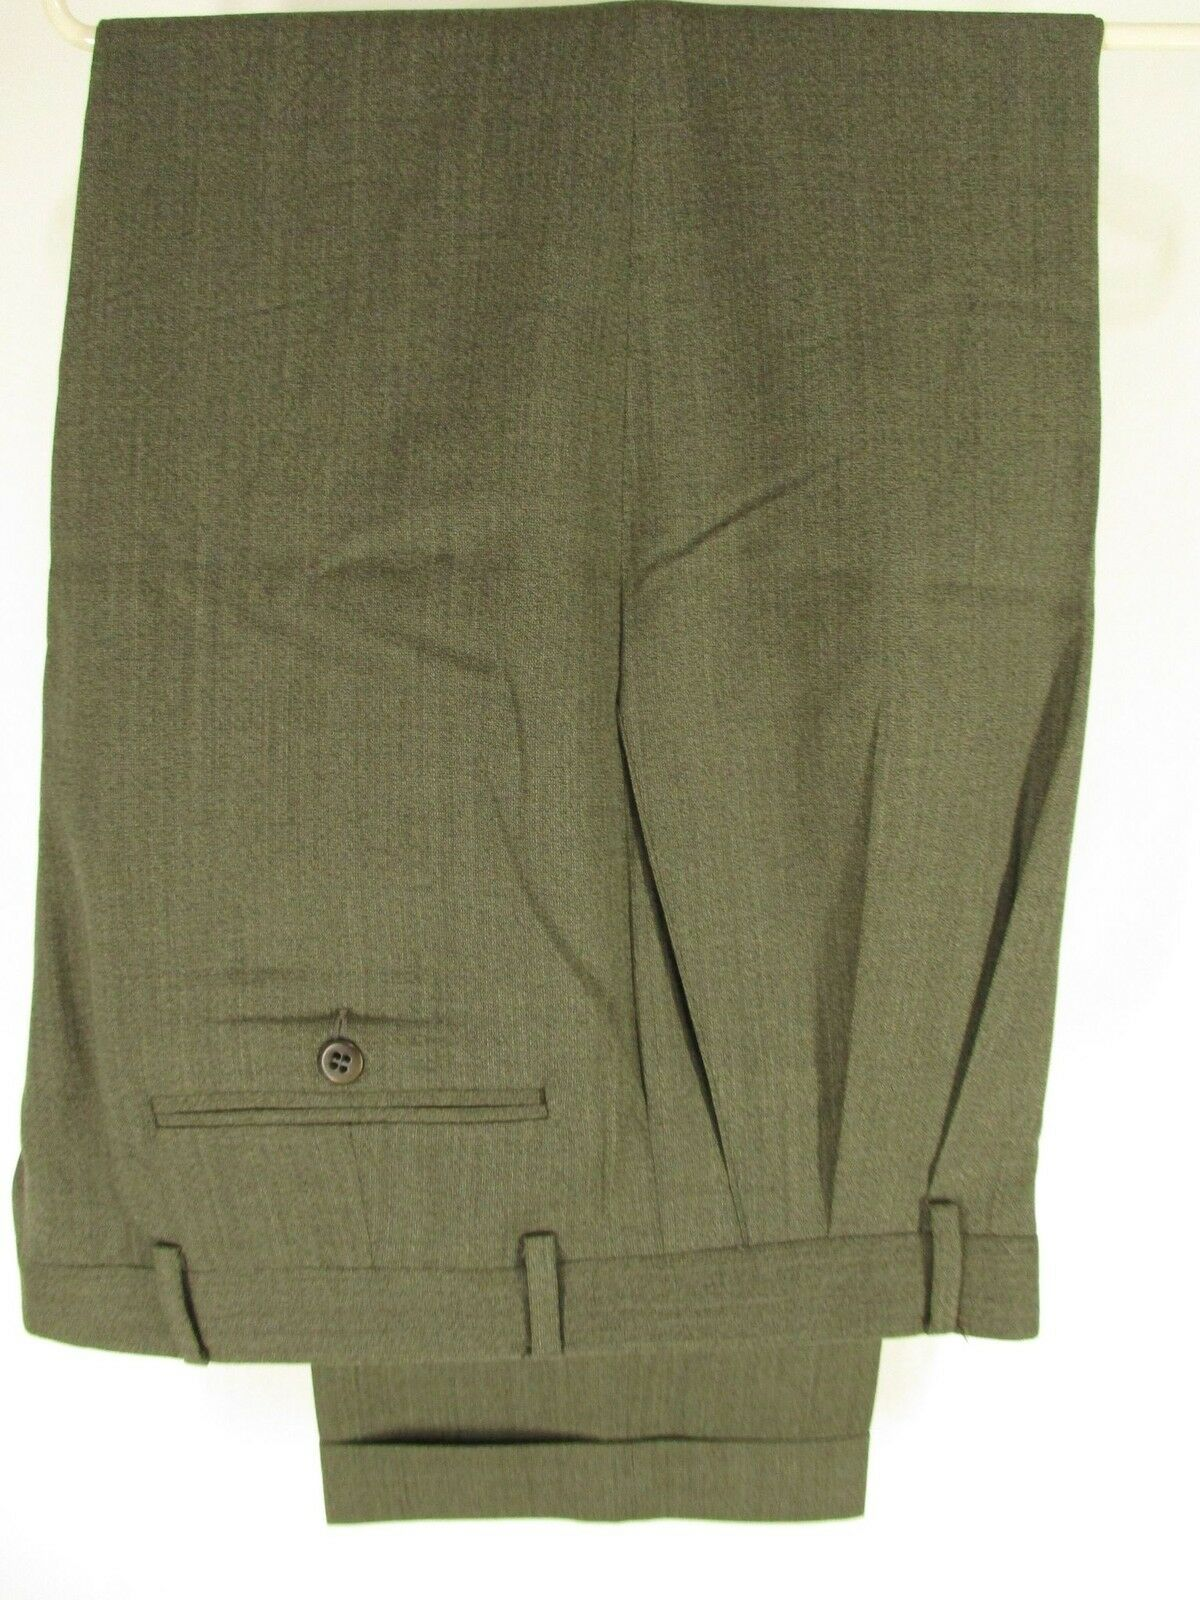 Zanella Austin Mens Grey Pleated Wool Dress Pants Size 33 34x29.5